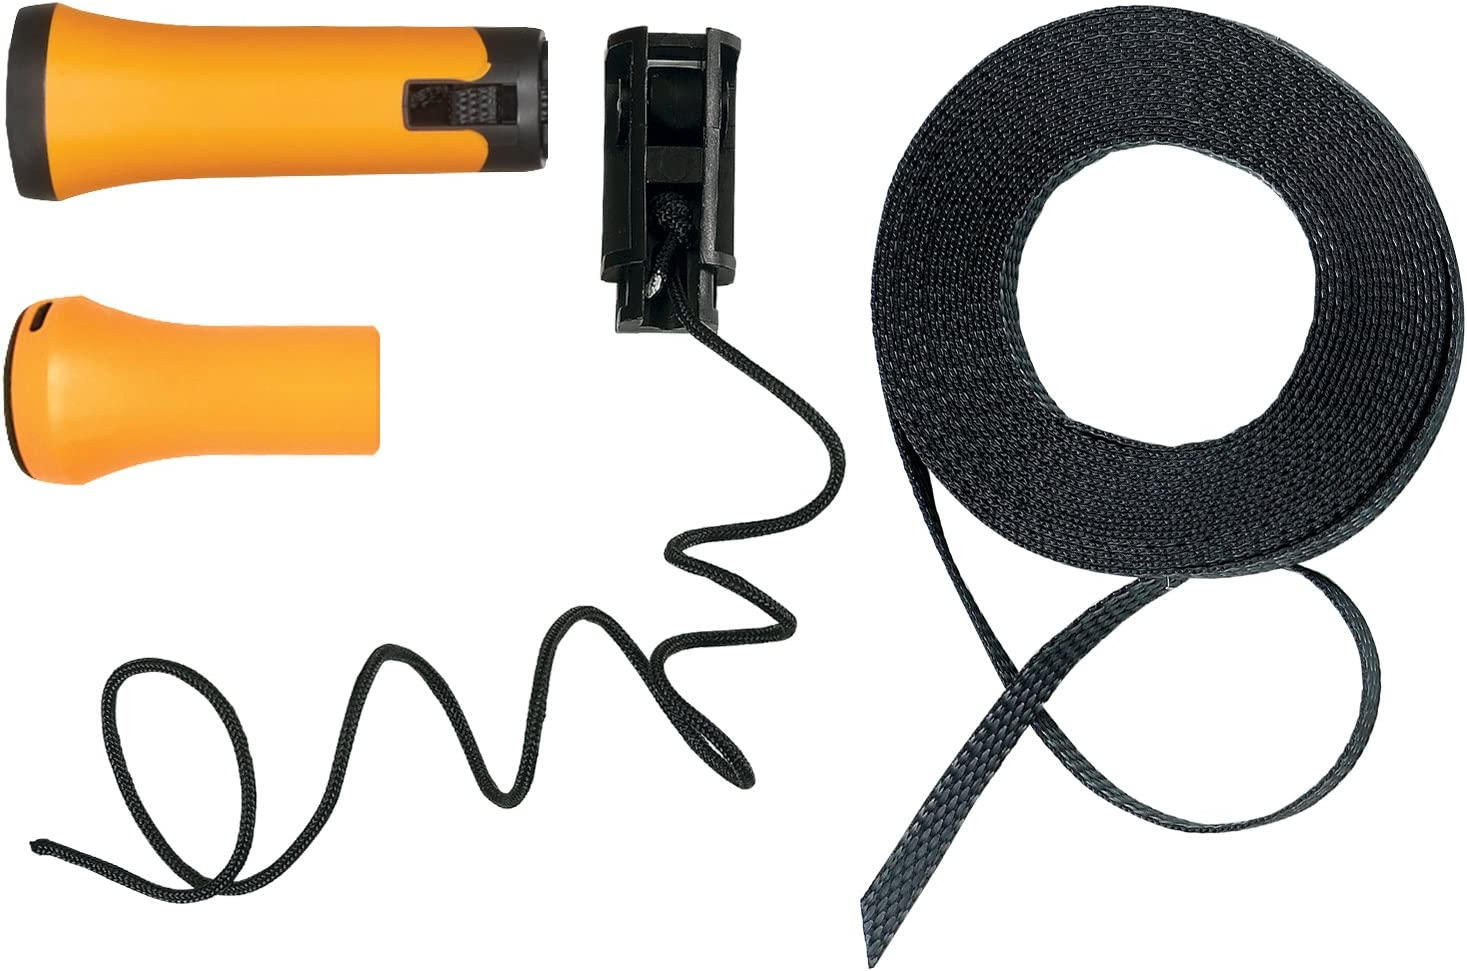 1026297 Black//Orange Fiskars Original replacement handle and rope for Fiskars Bypass telescopic tree pruner UPX82